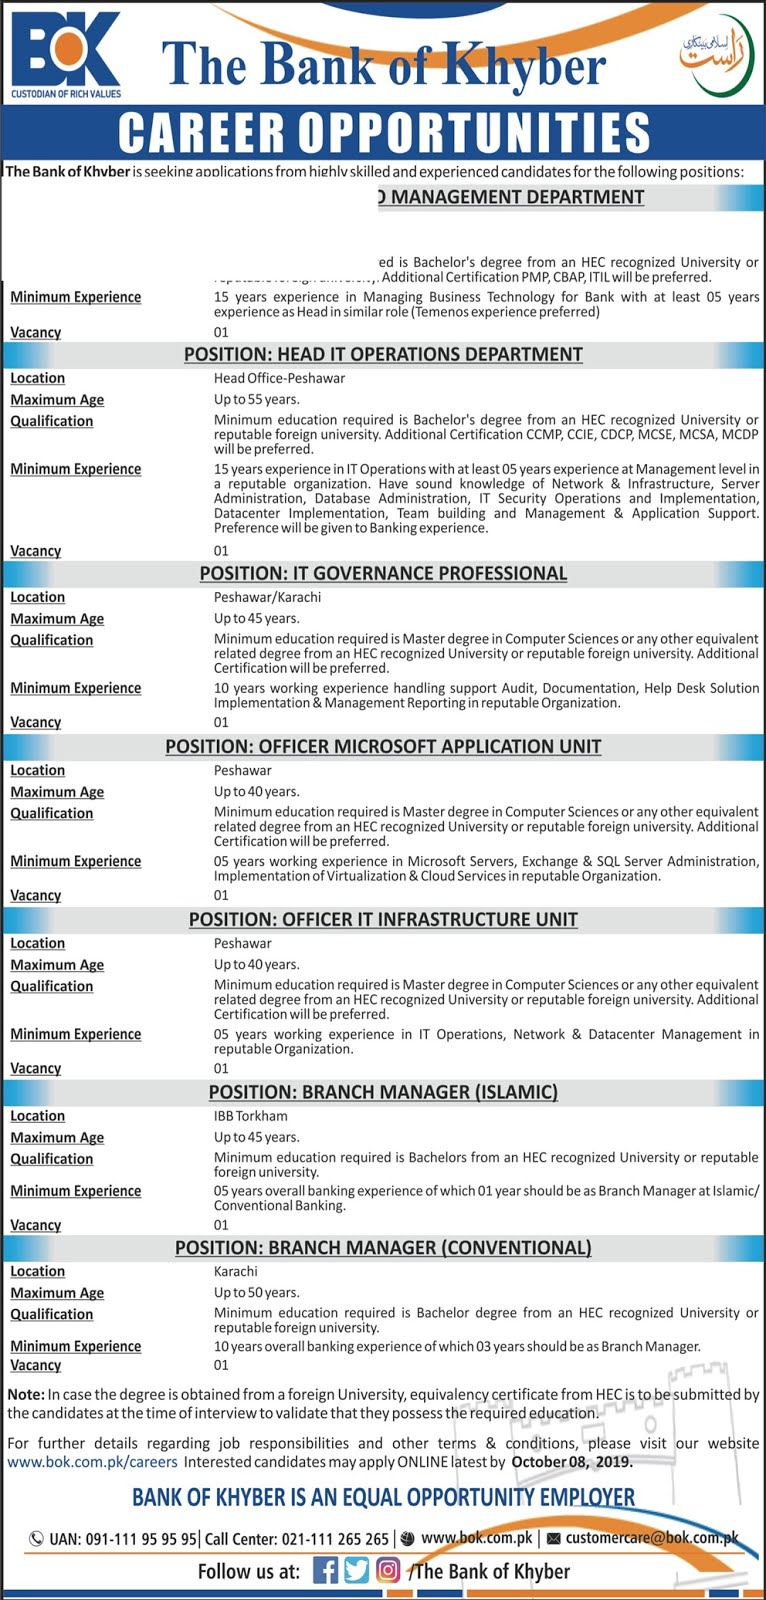 The Bank of Khyber (BoK) Jobs 2019 Apply Online Latest